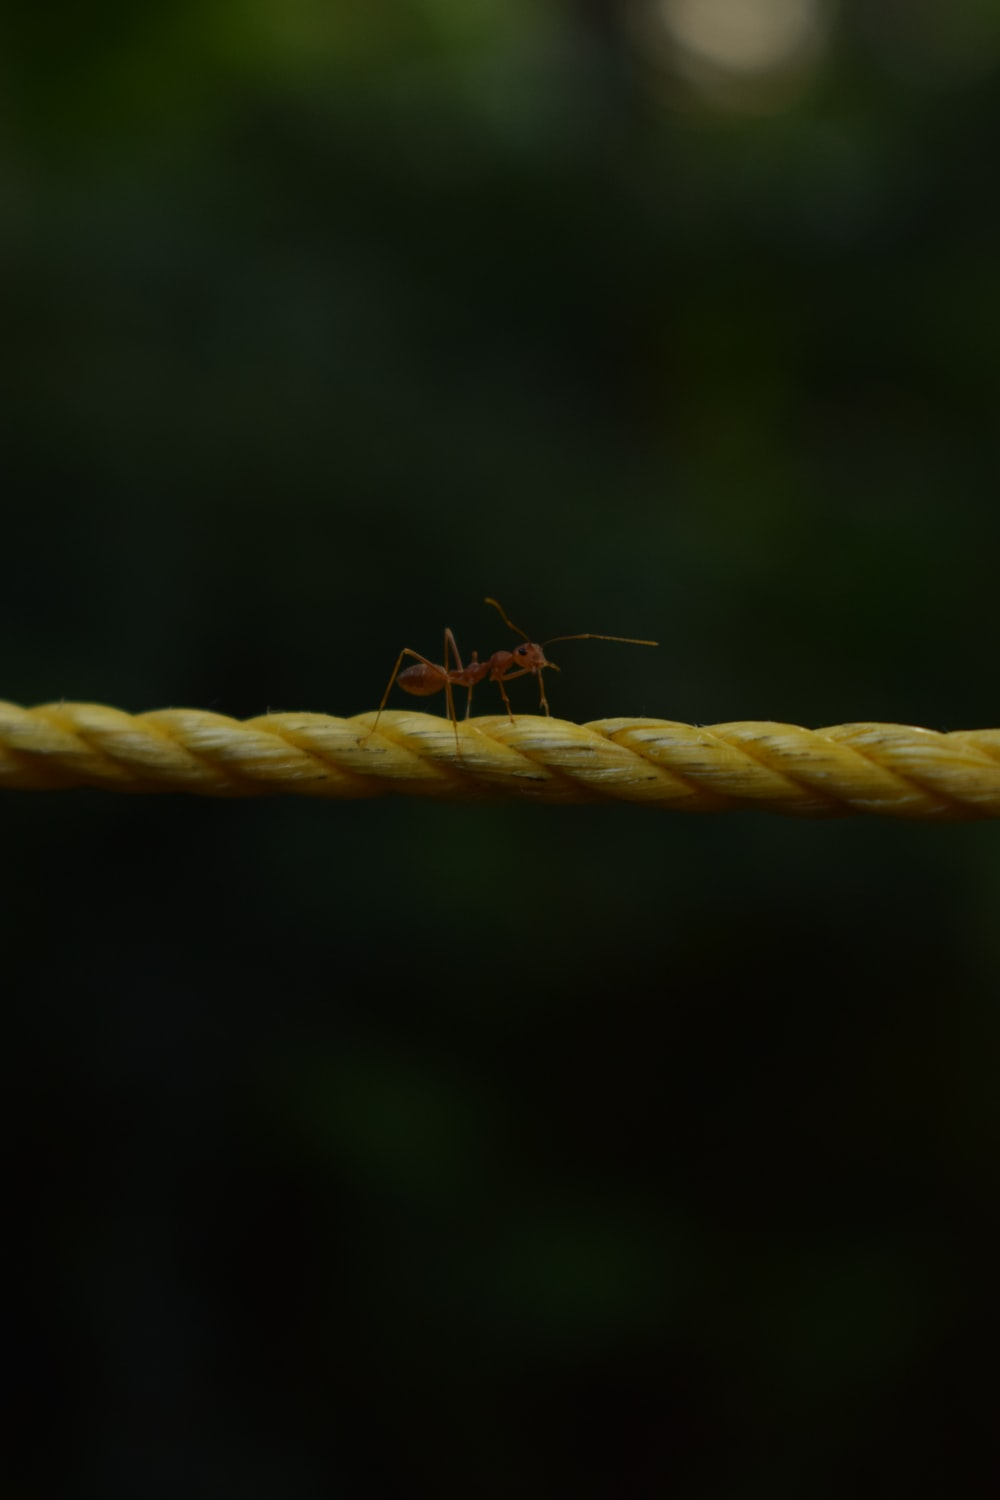 red ant on rope